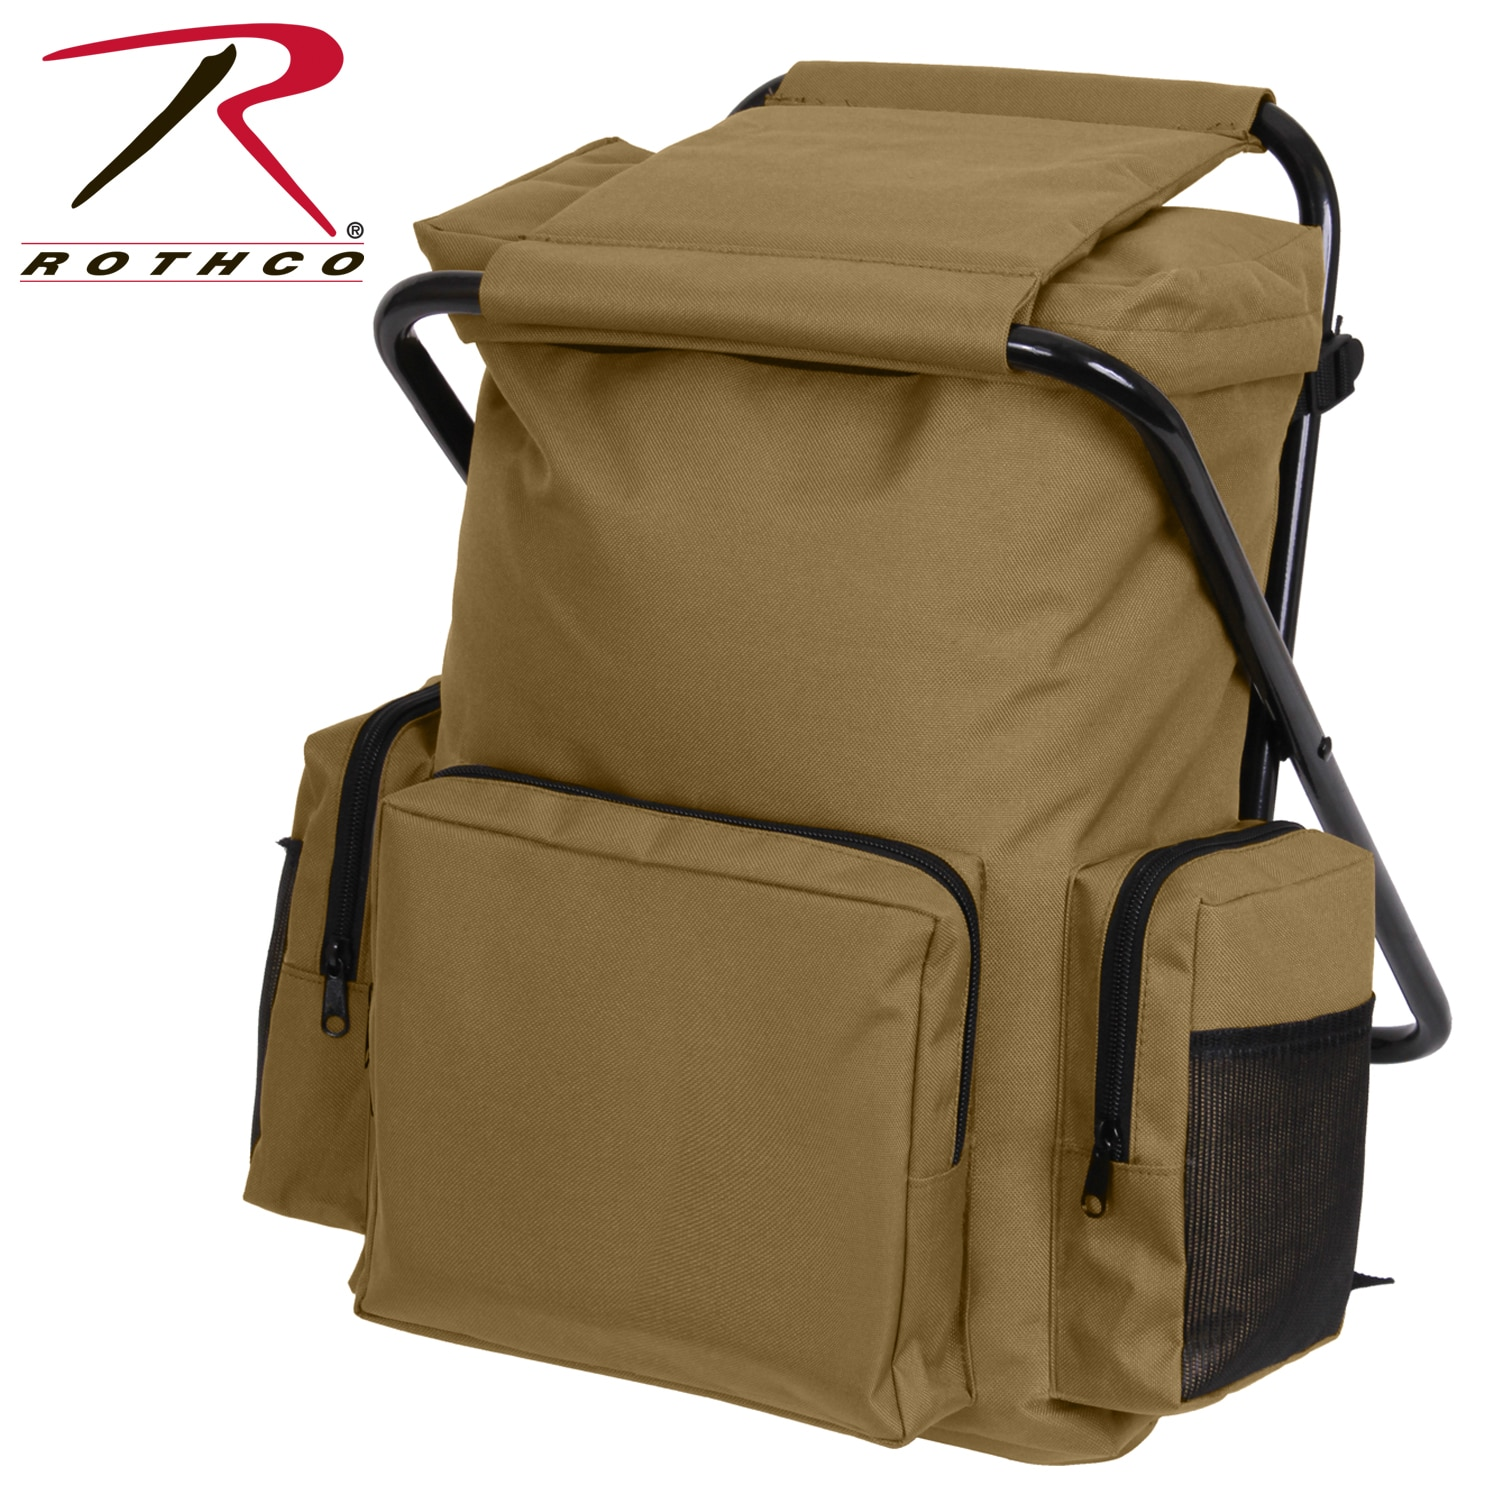 Rothco Backpack And Stool Combo Pack The Backpack Has